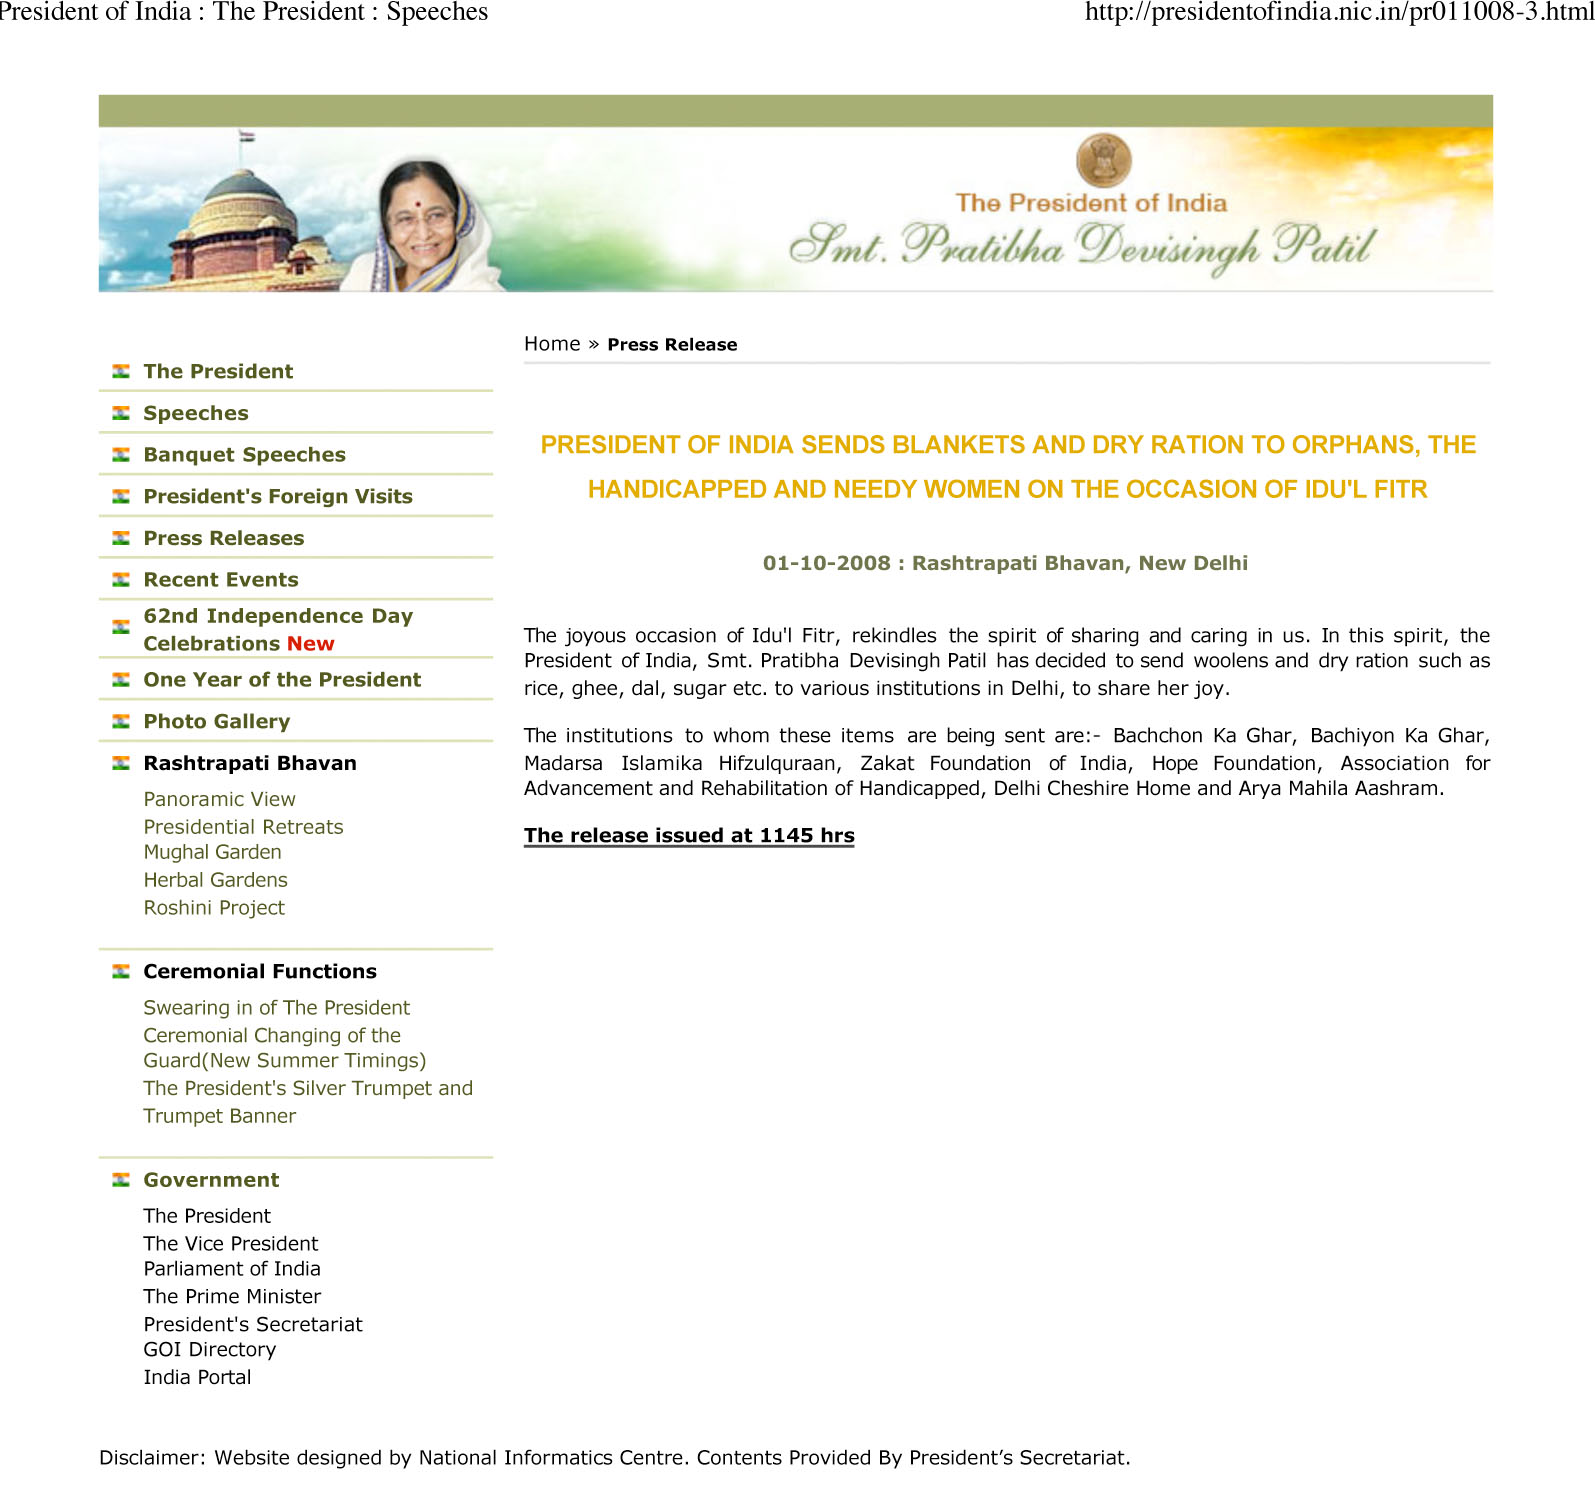 IndiaPresidentWebsite